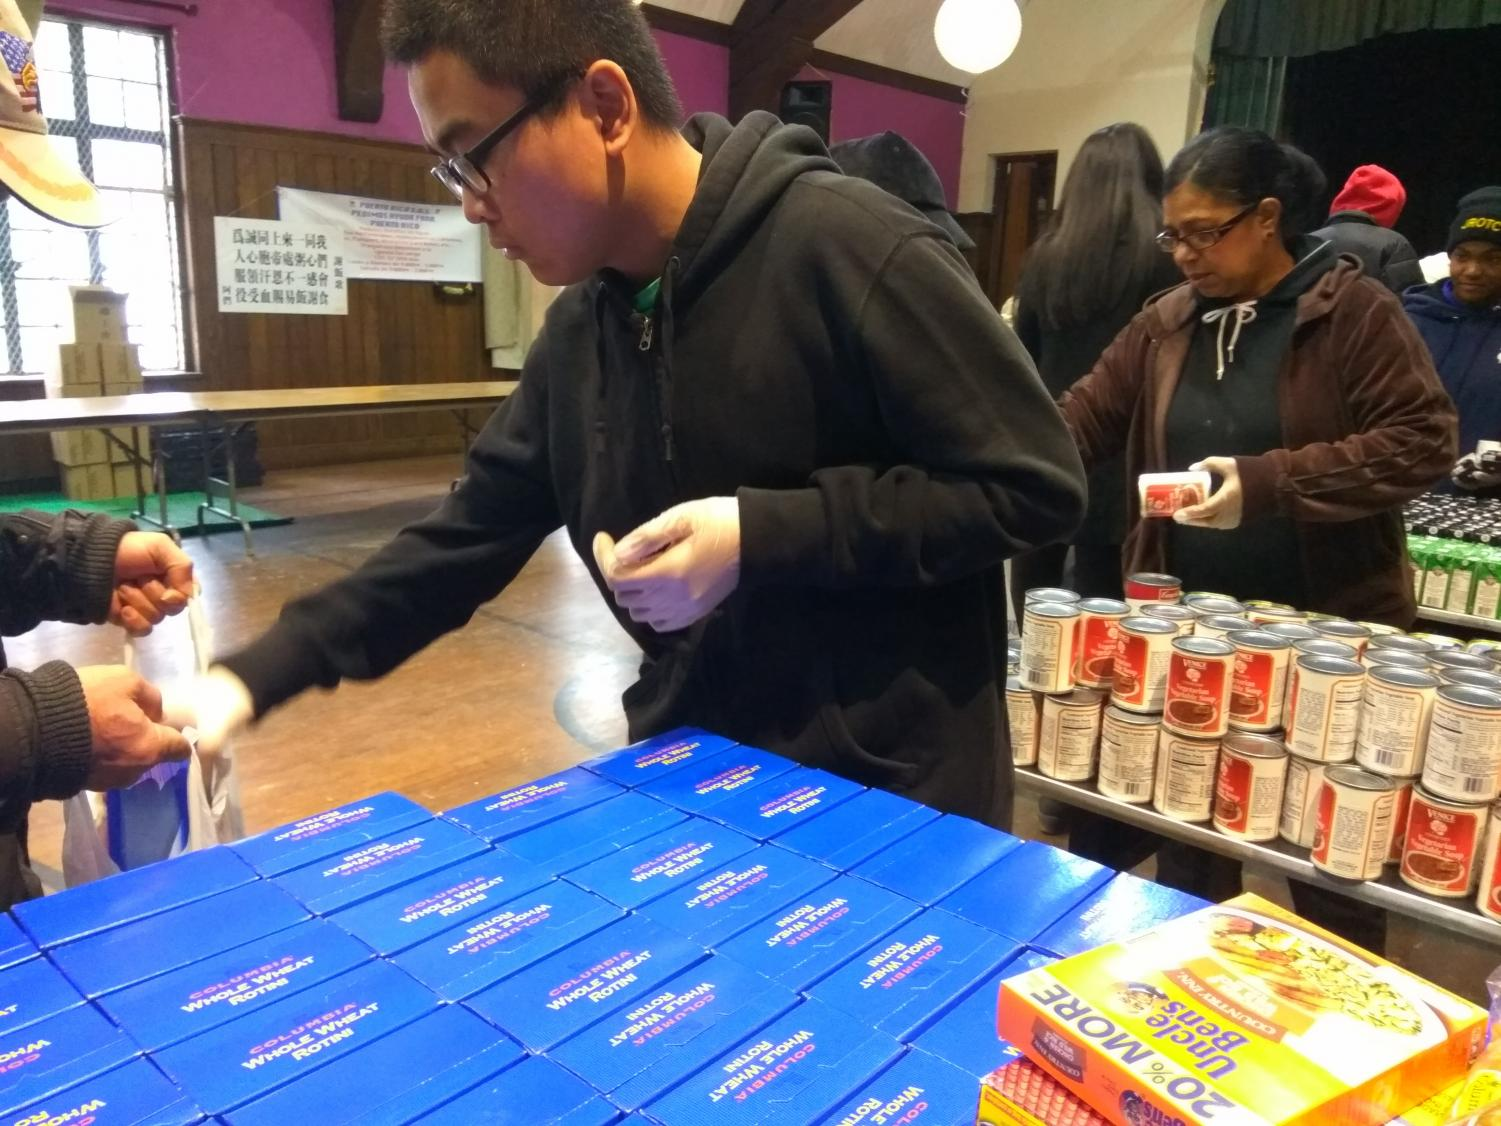 Volunteers distribute food donations at the St. George Church in Flushing.